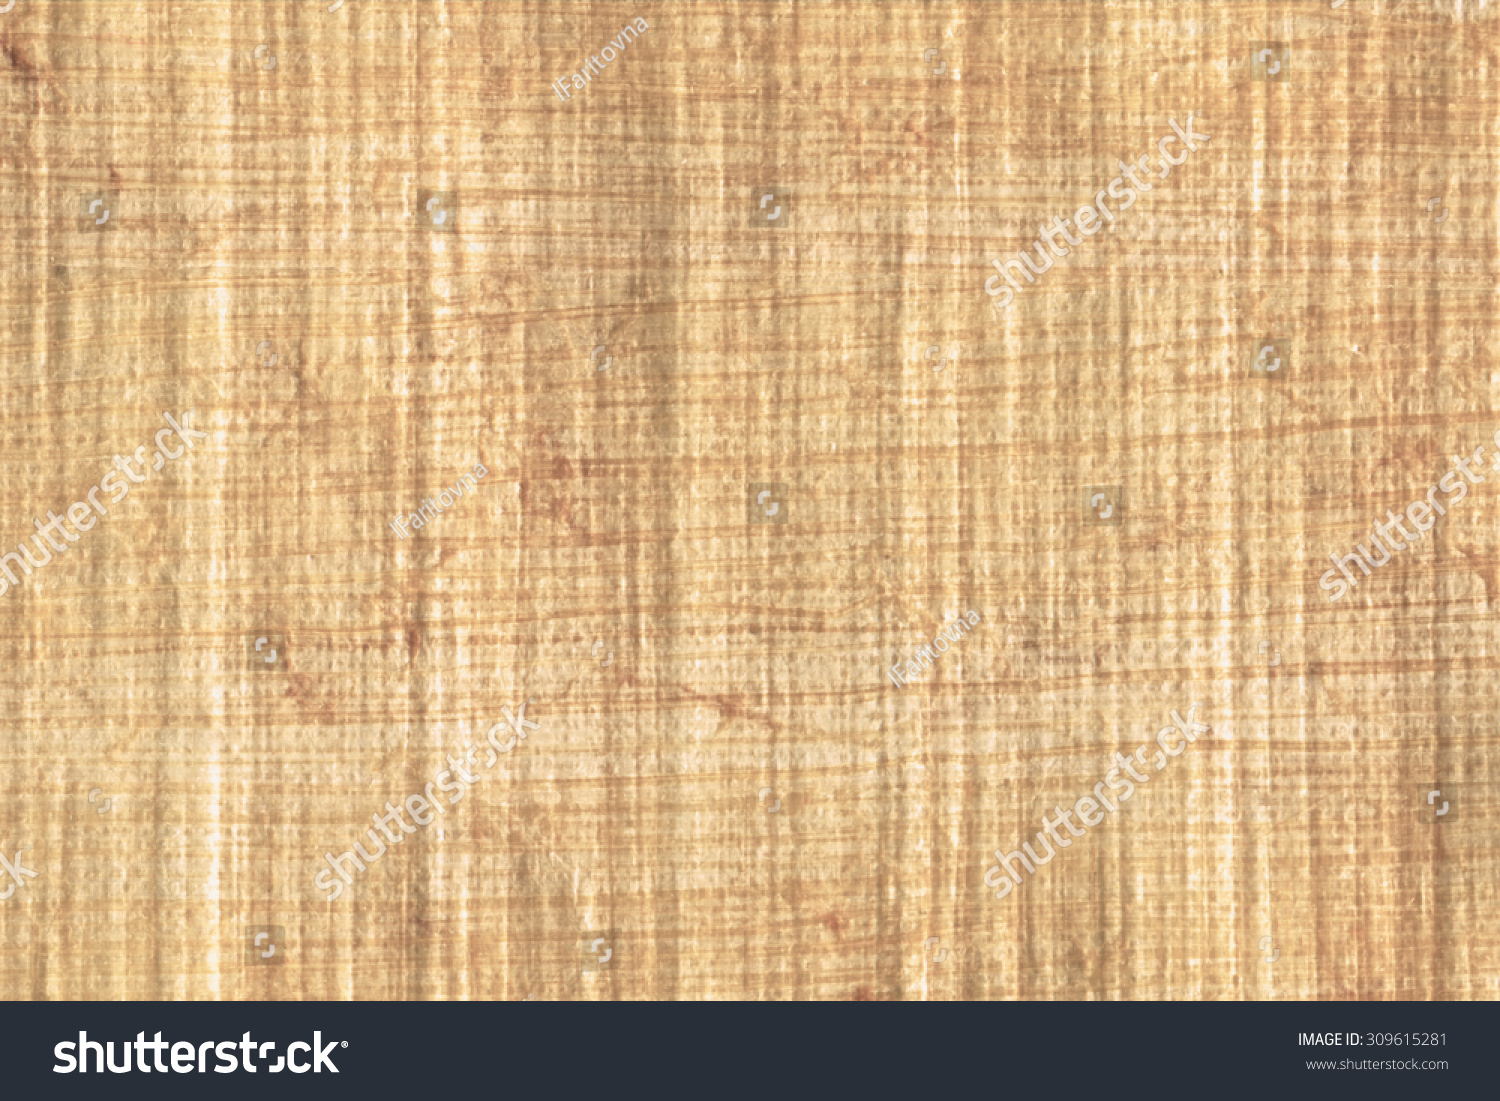 Texture Of Papyrus Paper To Use As A Background. Stock Photo 309615281 : Shutterstock